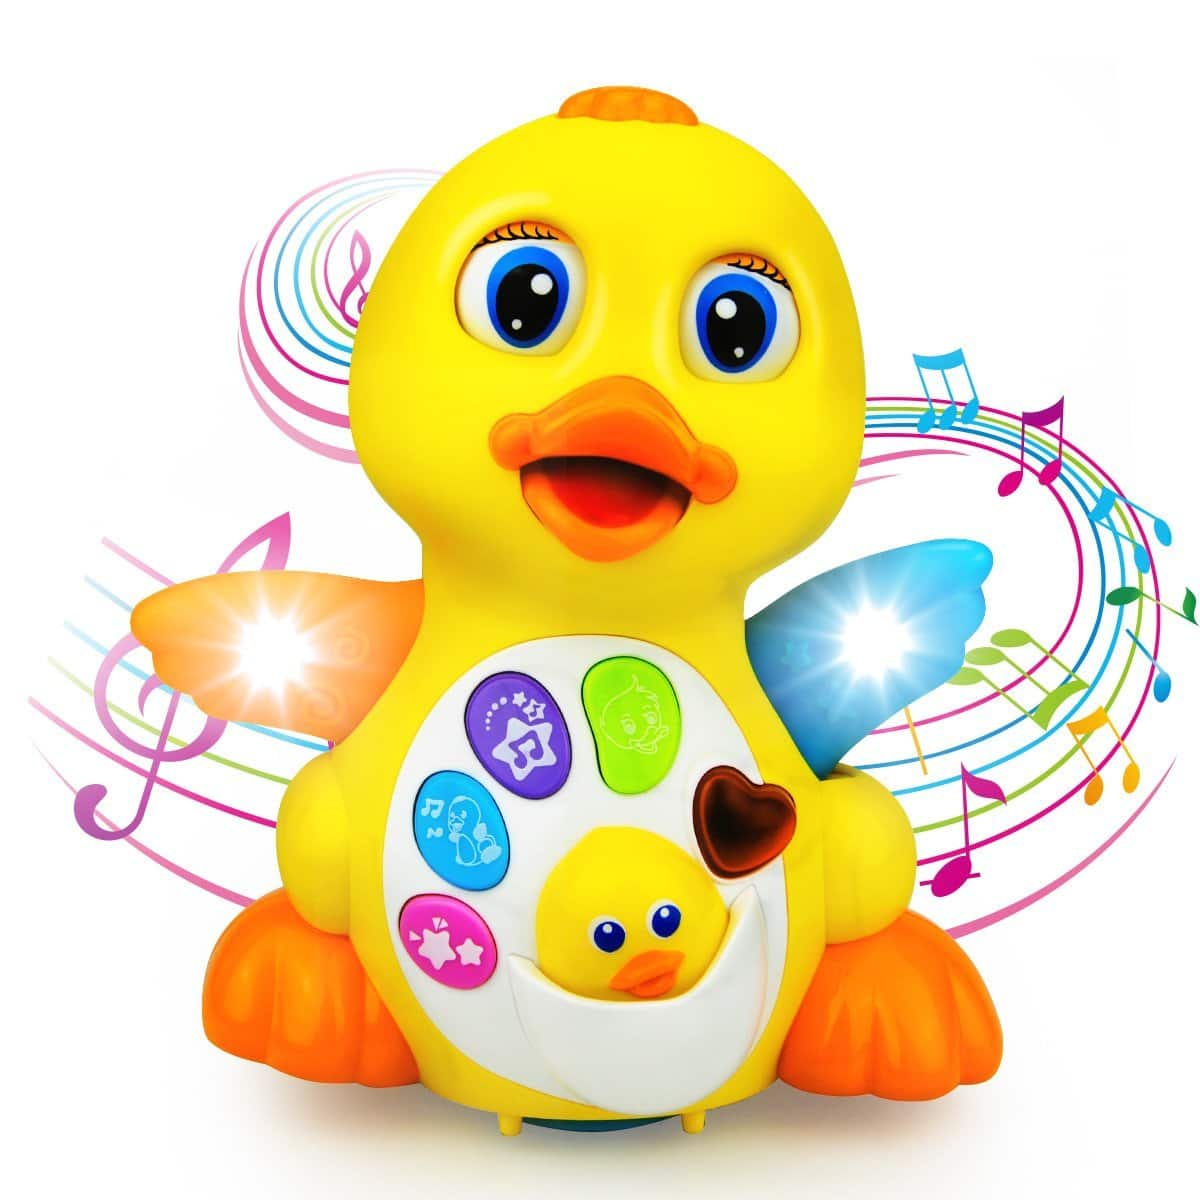 Musical Dancing Singing Duck Toy $10.79 + FS (Prime)